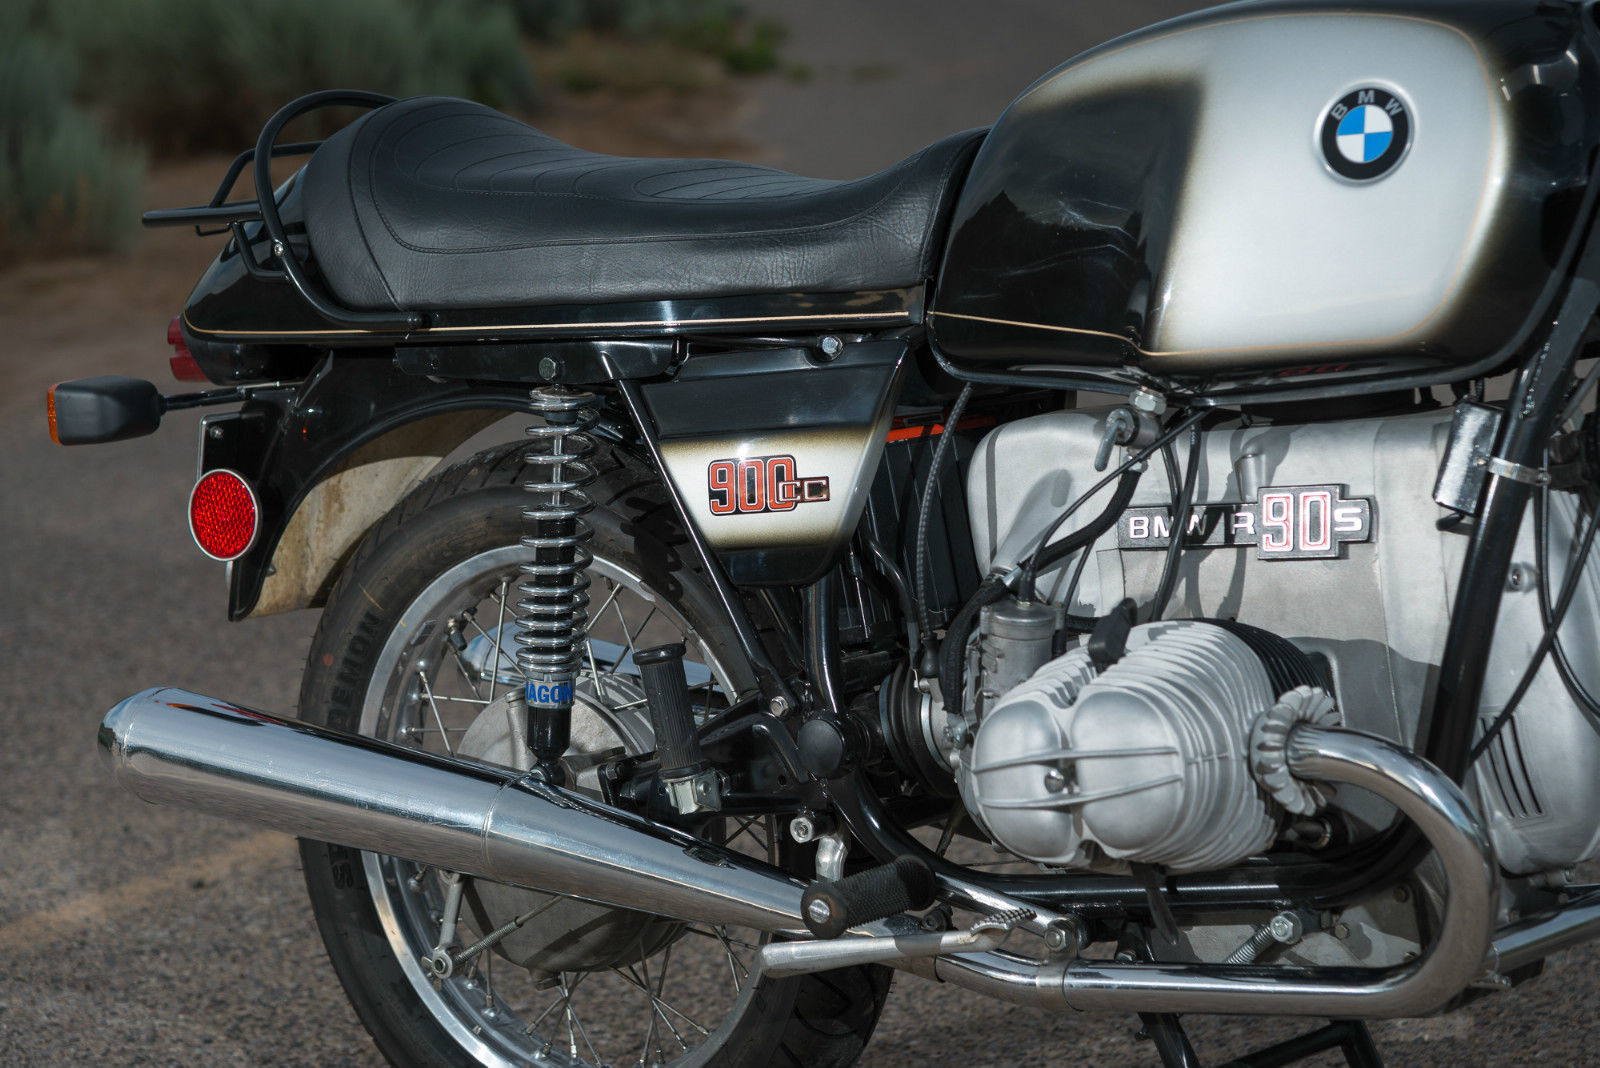 Restored Bmw R90s 1975 Photographs At Classic Bikes